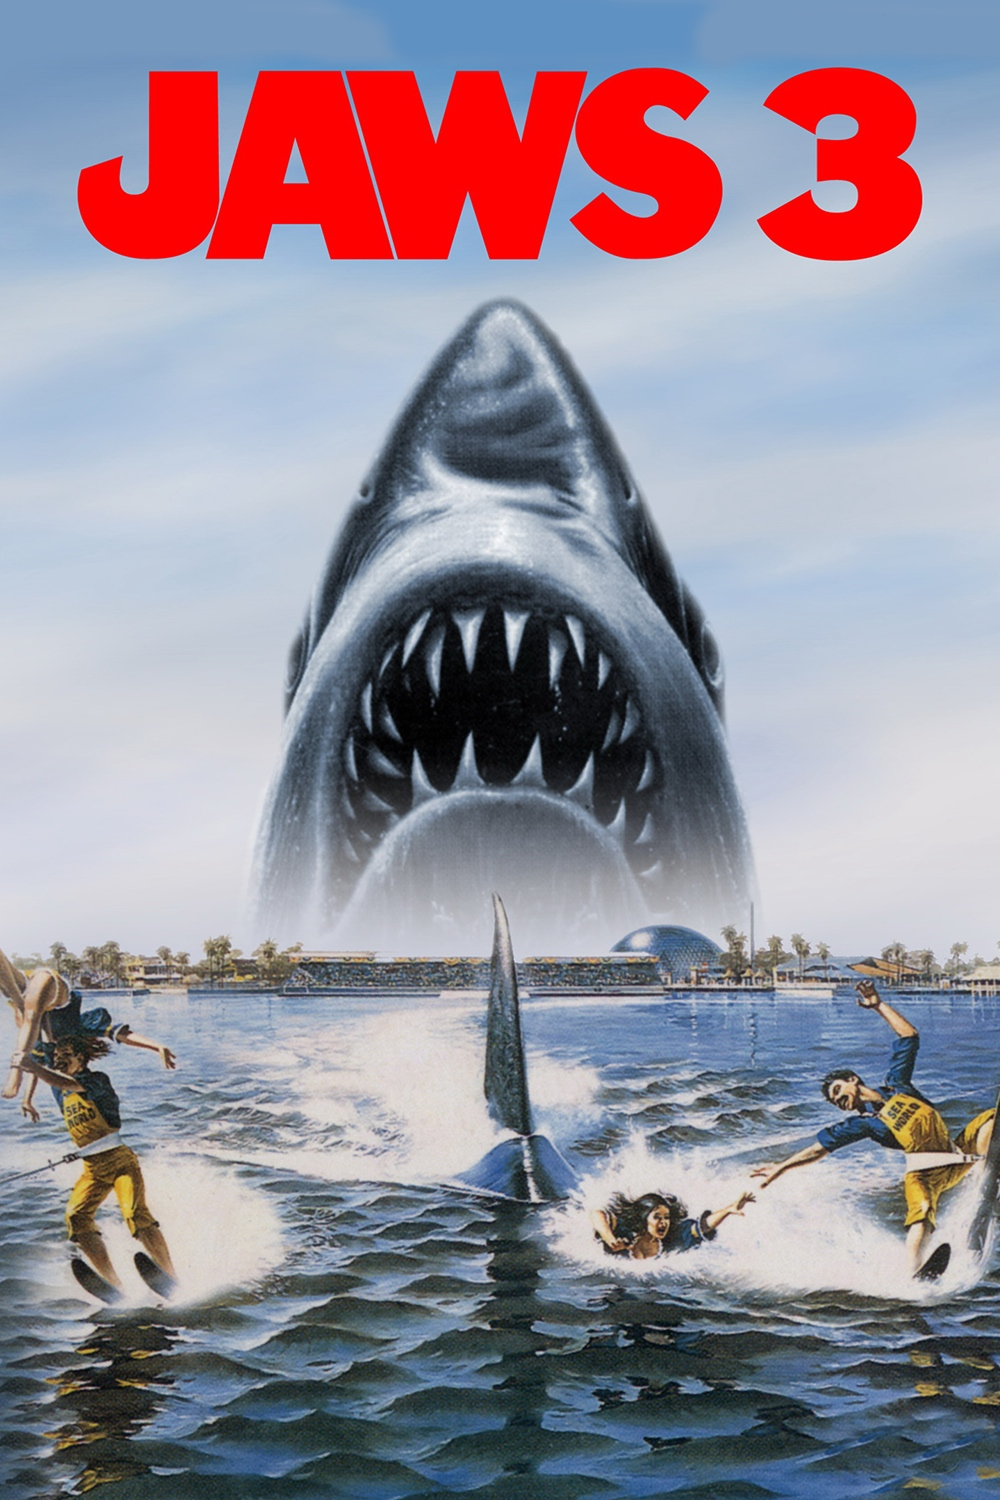 michael vs thomas jaws 3